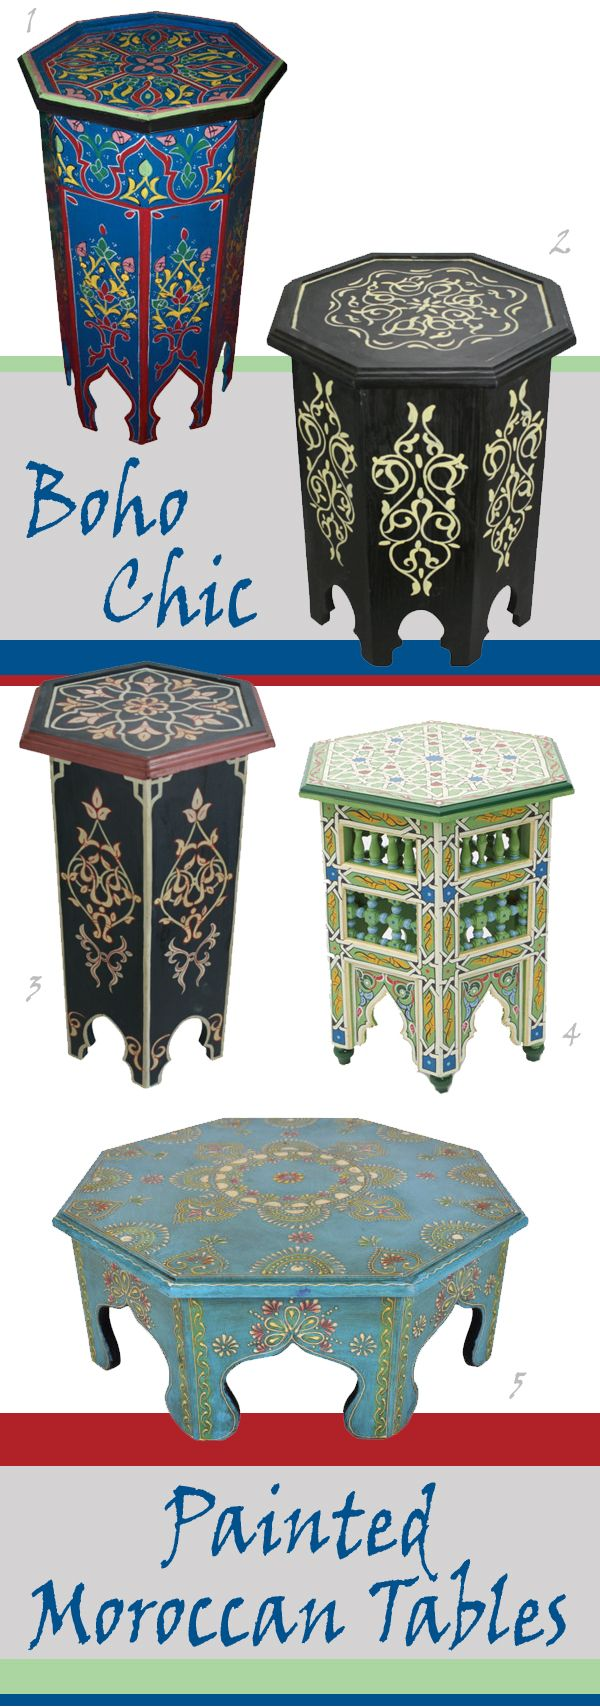 Nomadic Decorator | Painted Moroccan Tables | http://nomadicdecorator.com